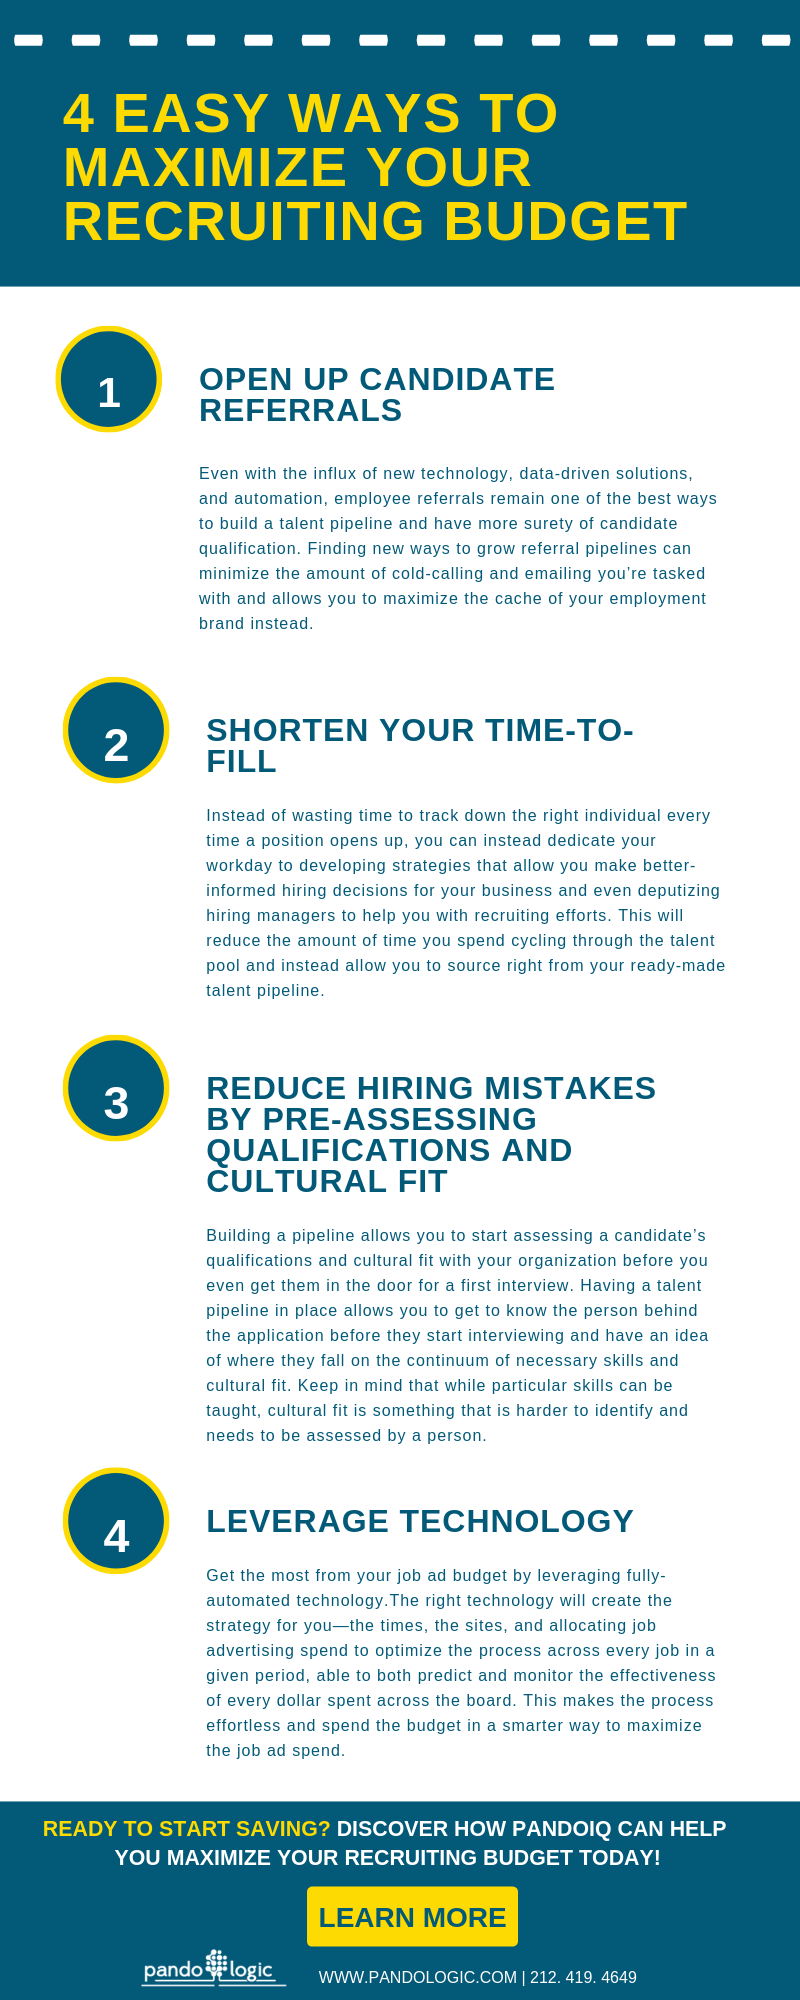 4 Easy Ways to Maximize Your Recruiting Budget